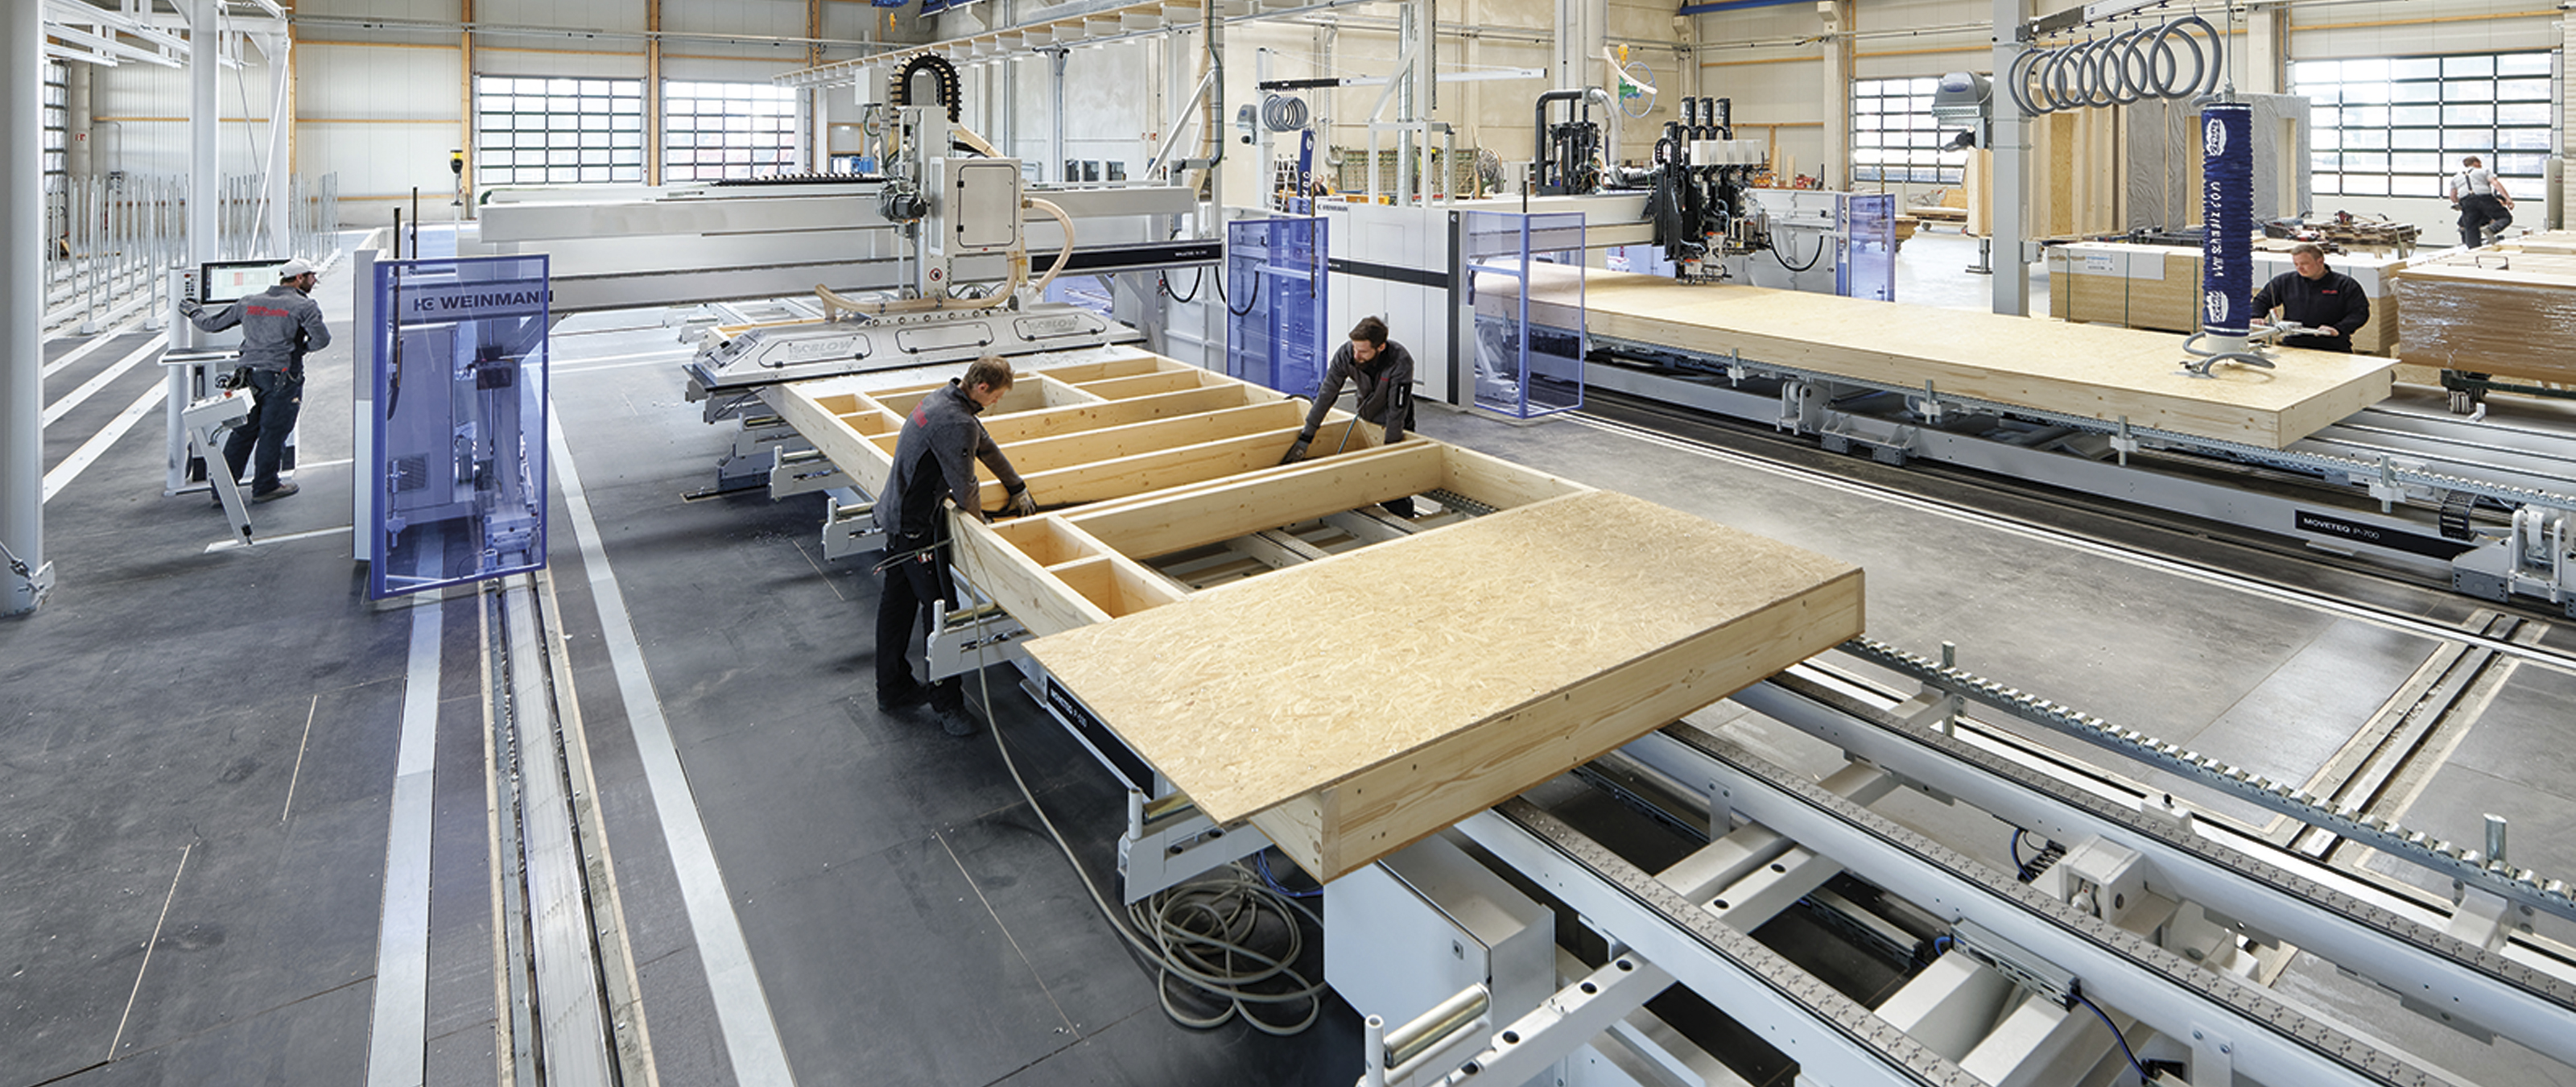 WEINMANN Wall production line for prefabricated houses with nailing bridges and framing tables